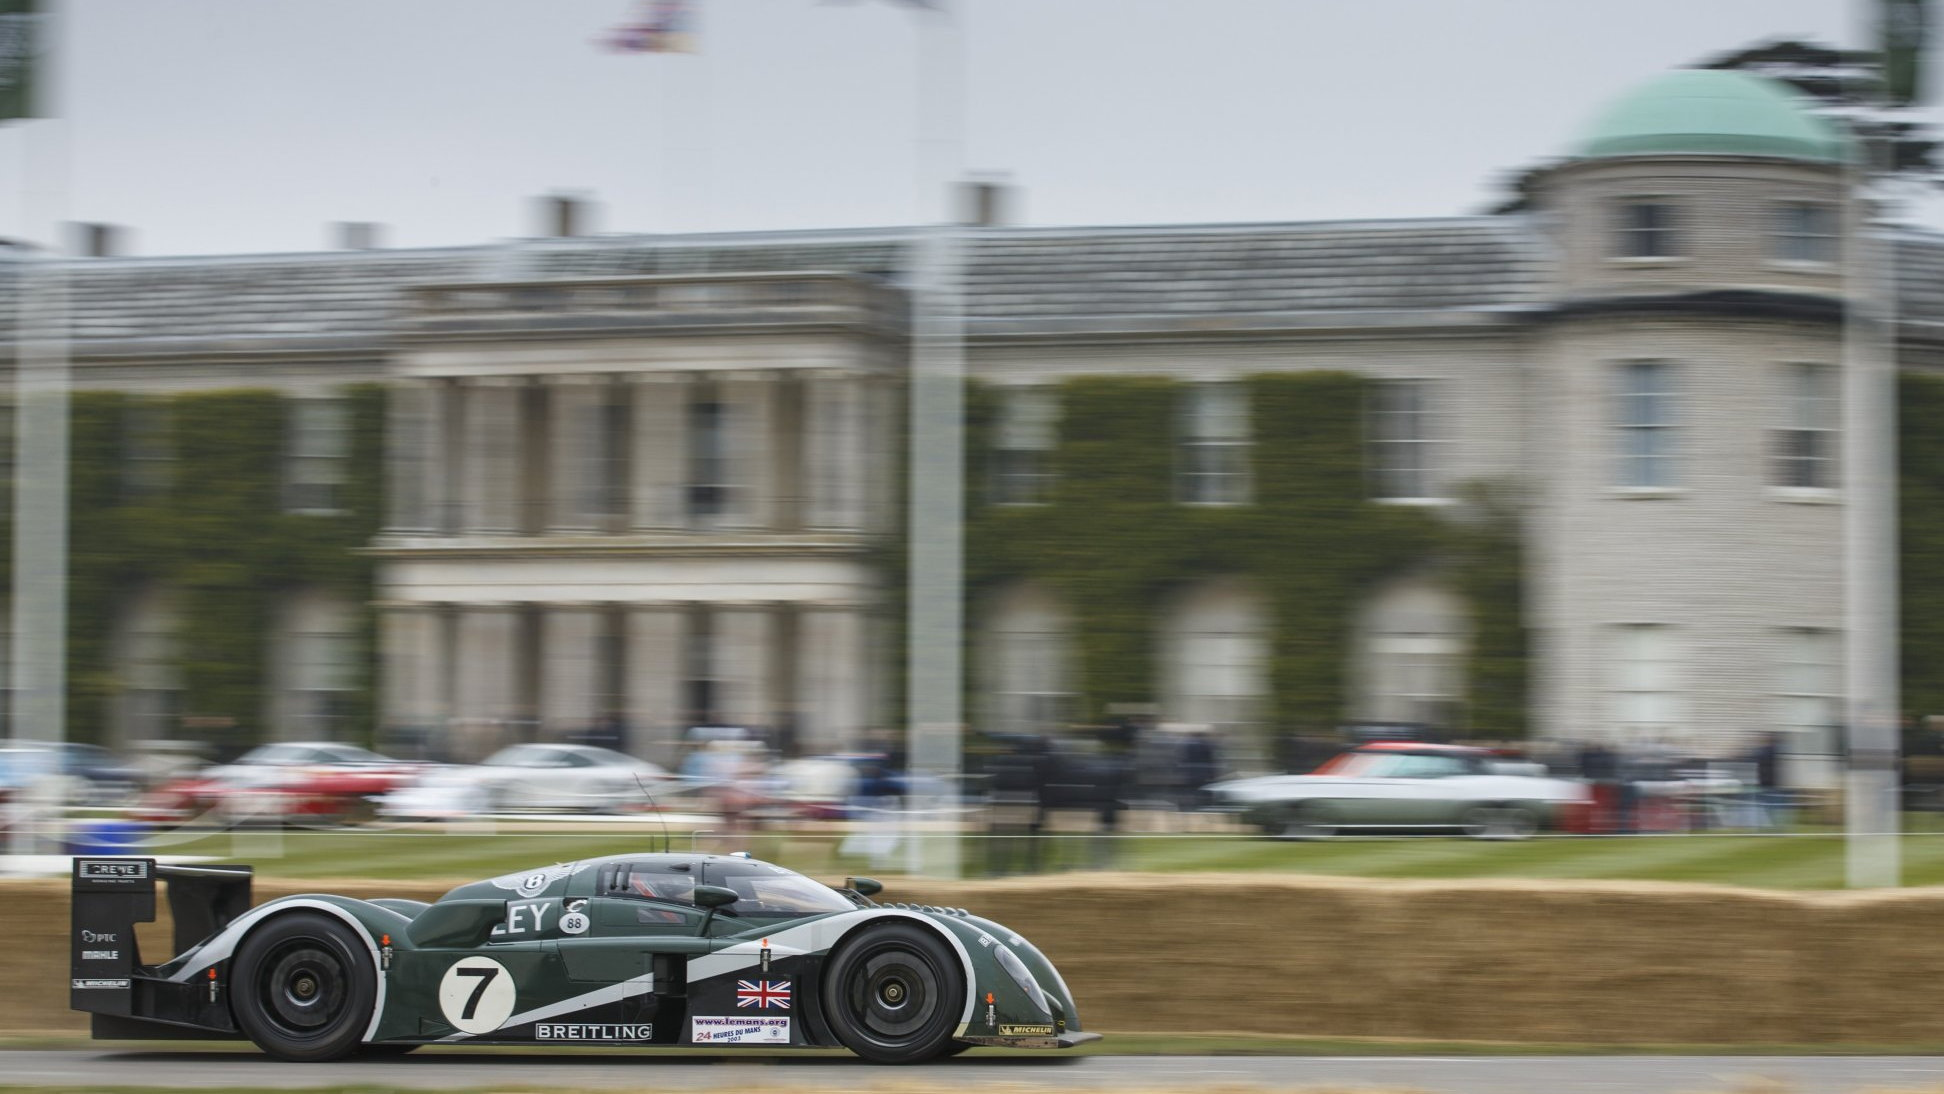 The Bentley Speed 8 at the Goodwood Festival of Speed - image: Bentley